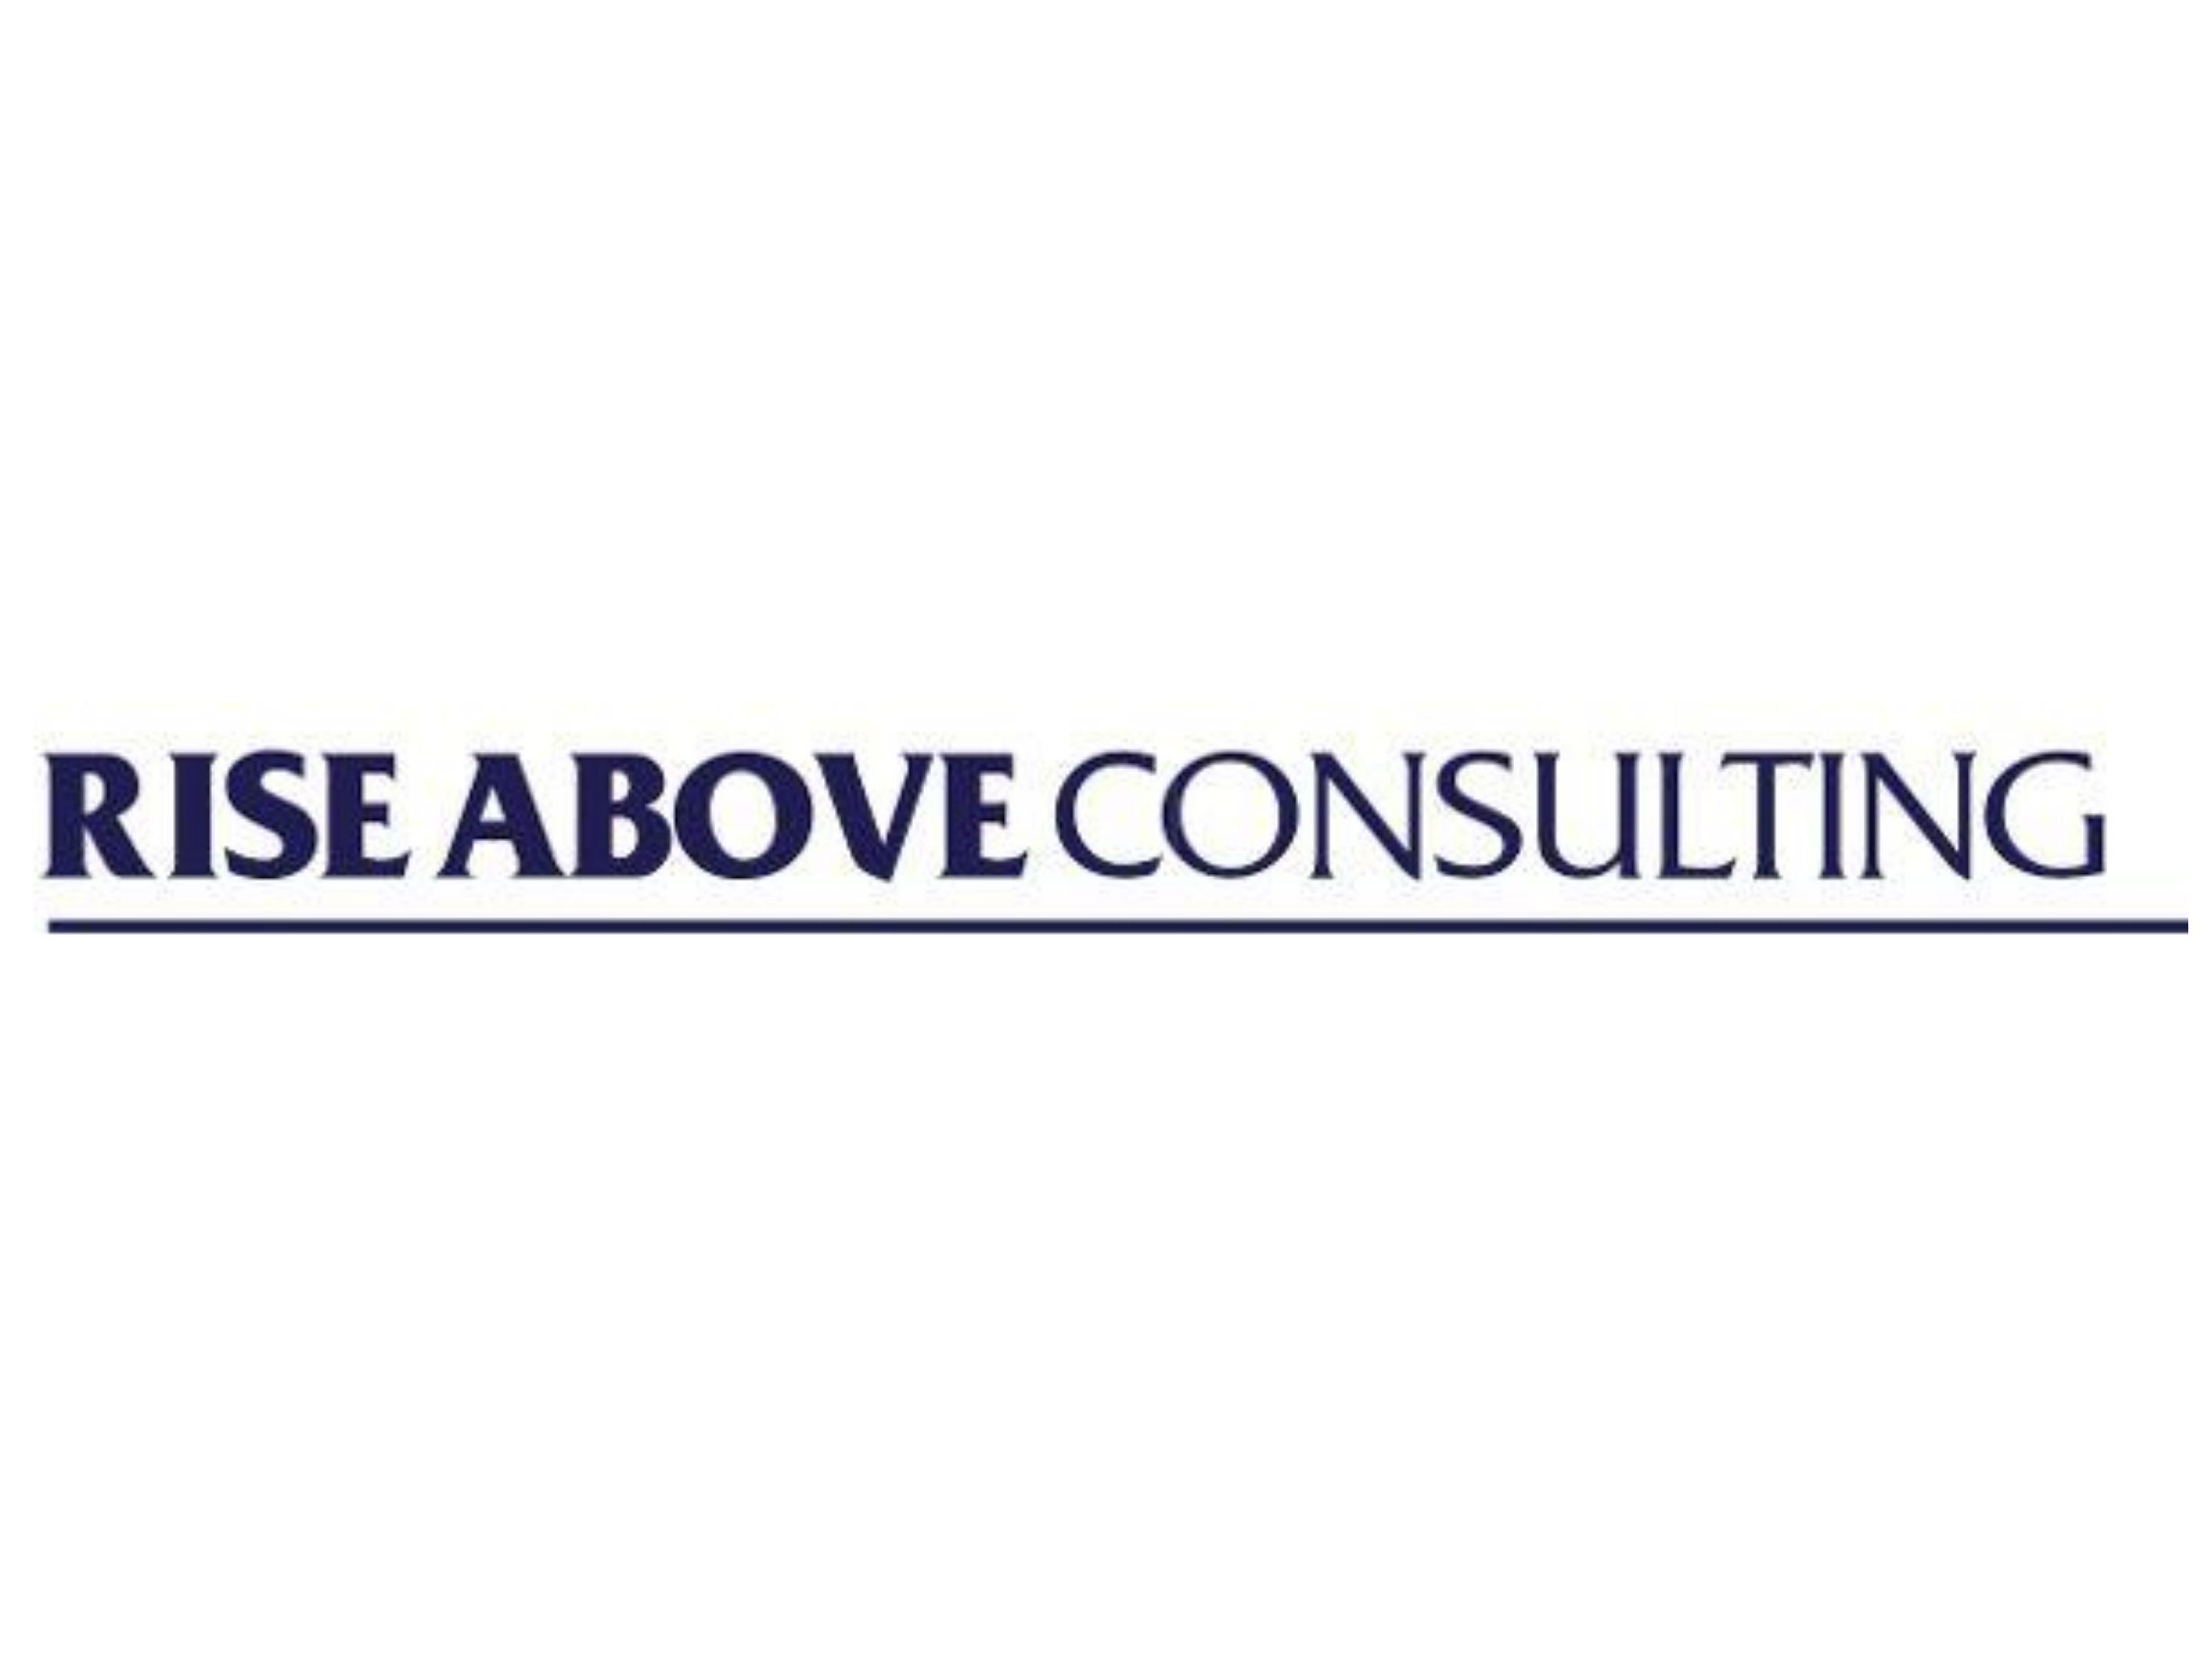 Rise Above Consulting logo